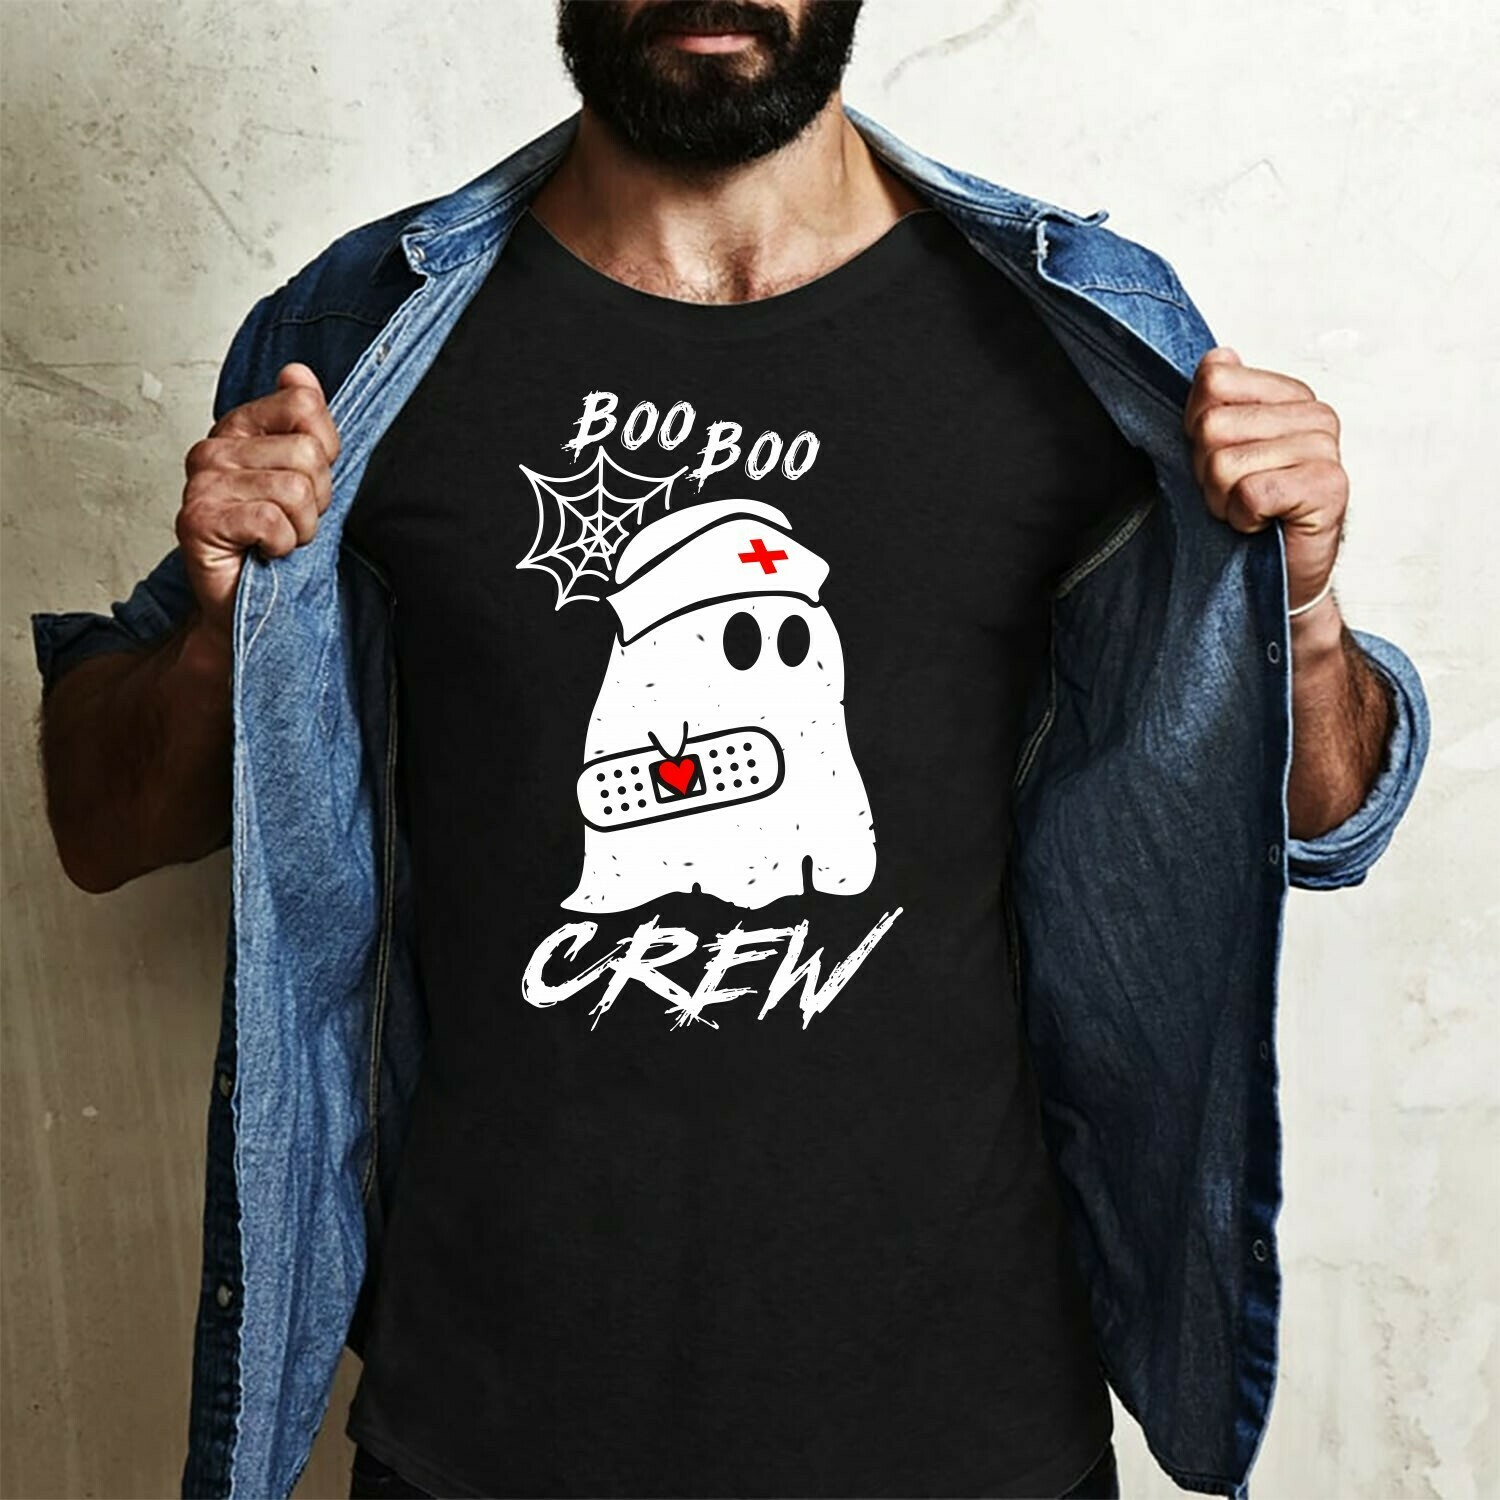 Halloween Boo Boo Crew Gifts Idea For Yourself And Friends Boo Horror Heartbeats Nursing Student Graduation School Nurse's Day T-Shirt Long Sleeve Sweatshirt Hoodie Jolly Family Gifts